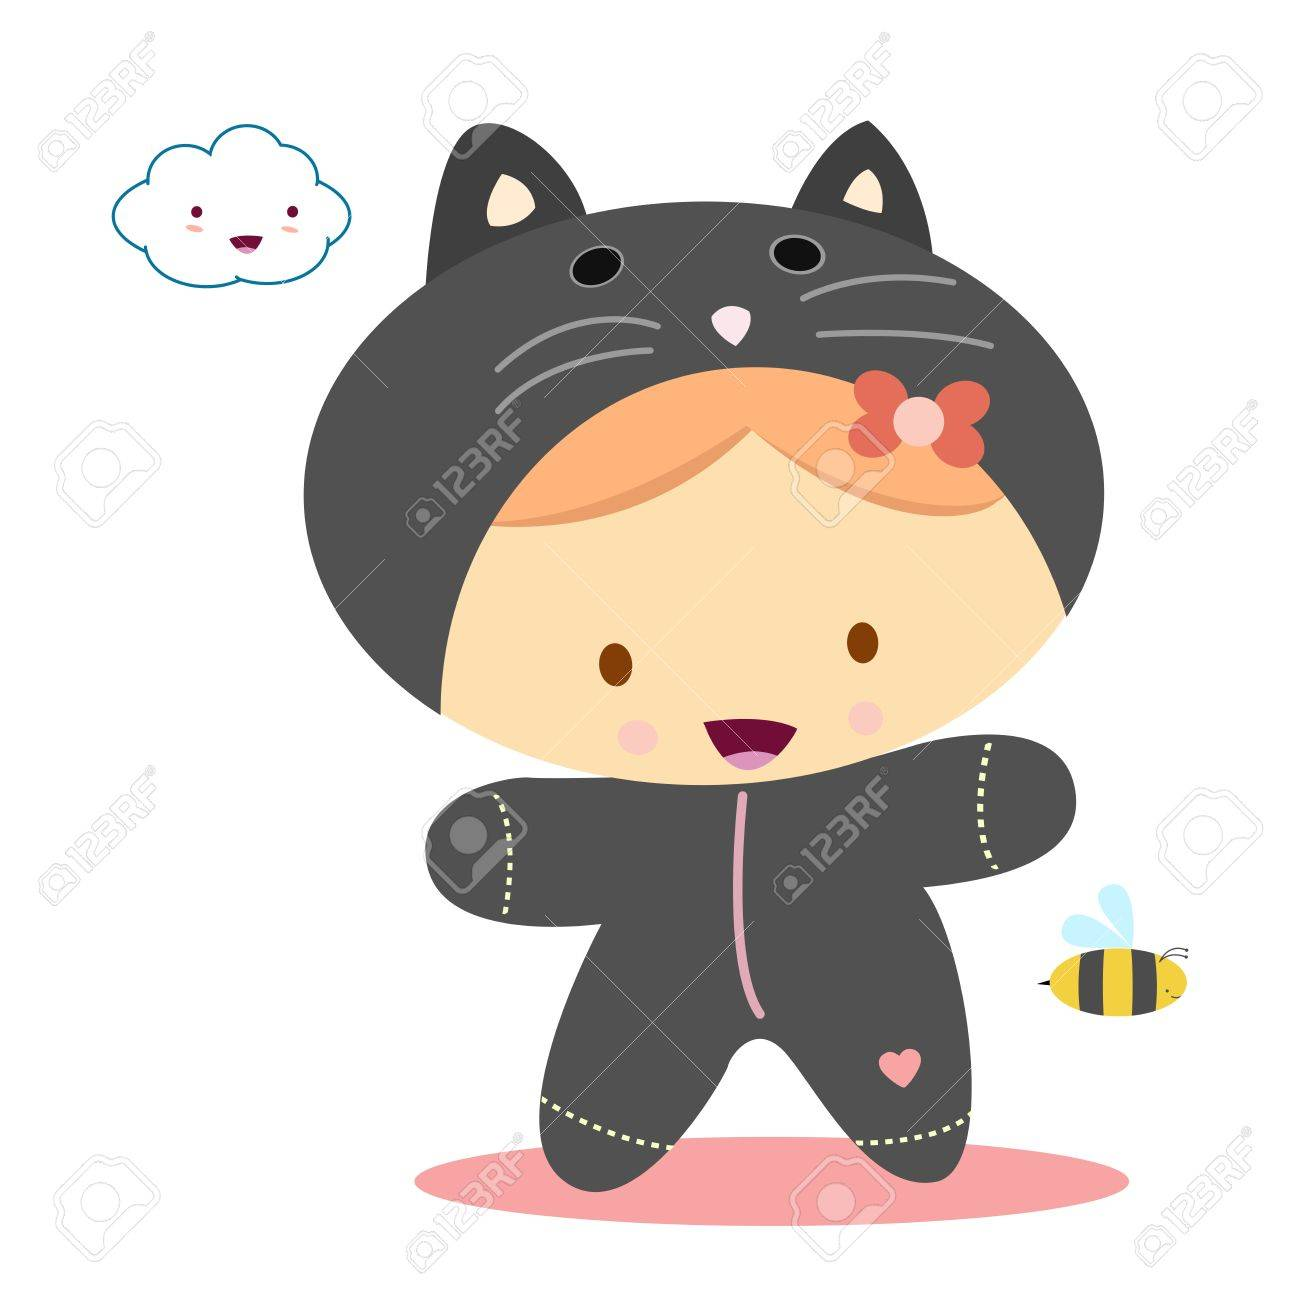 girl with cat costume, kawaii style Stock Vector - 10424665